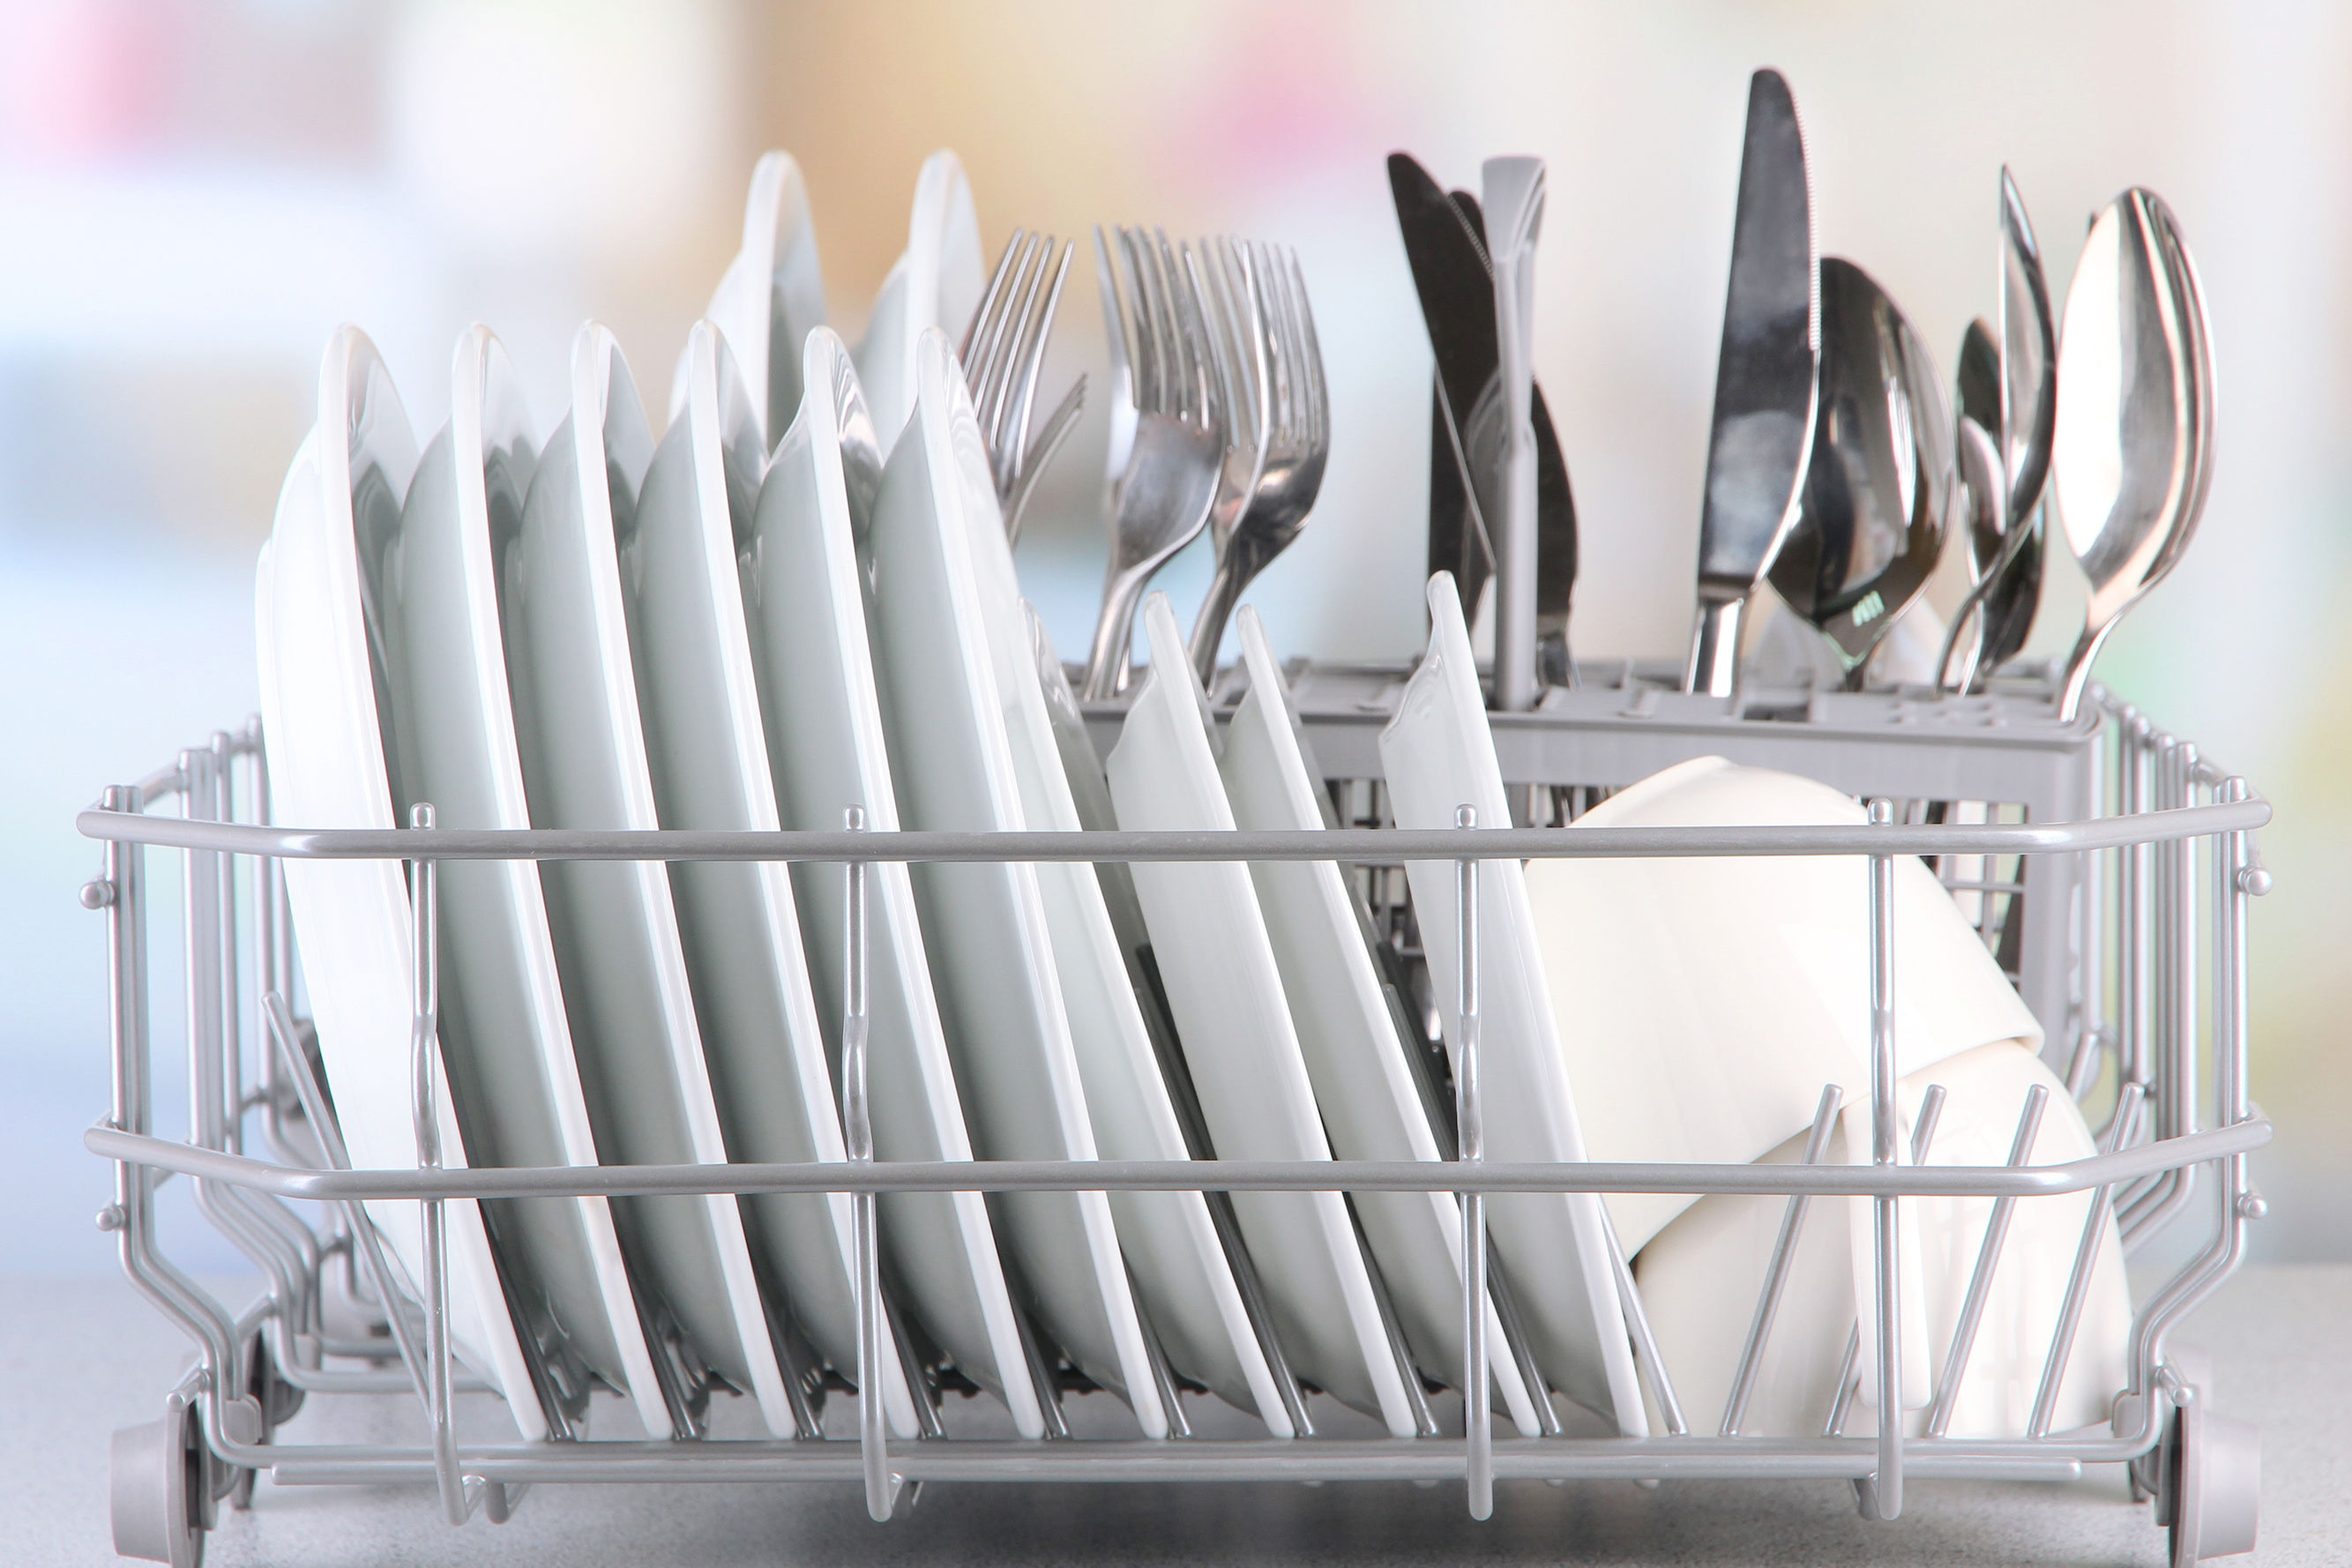 This Is the Best Way to Wash Your Dishes By Hand, According to Experts